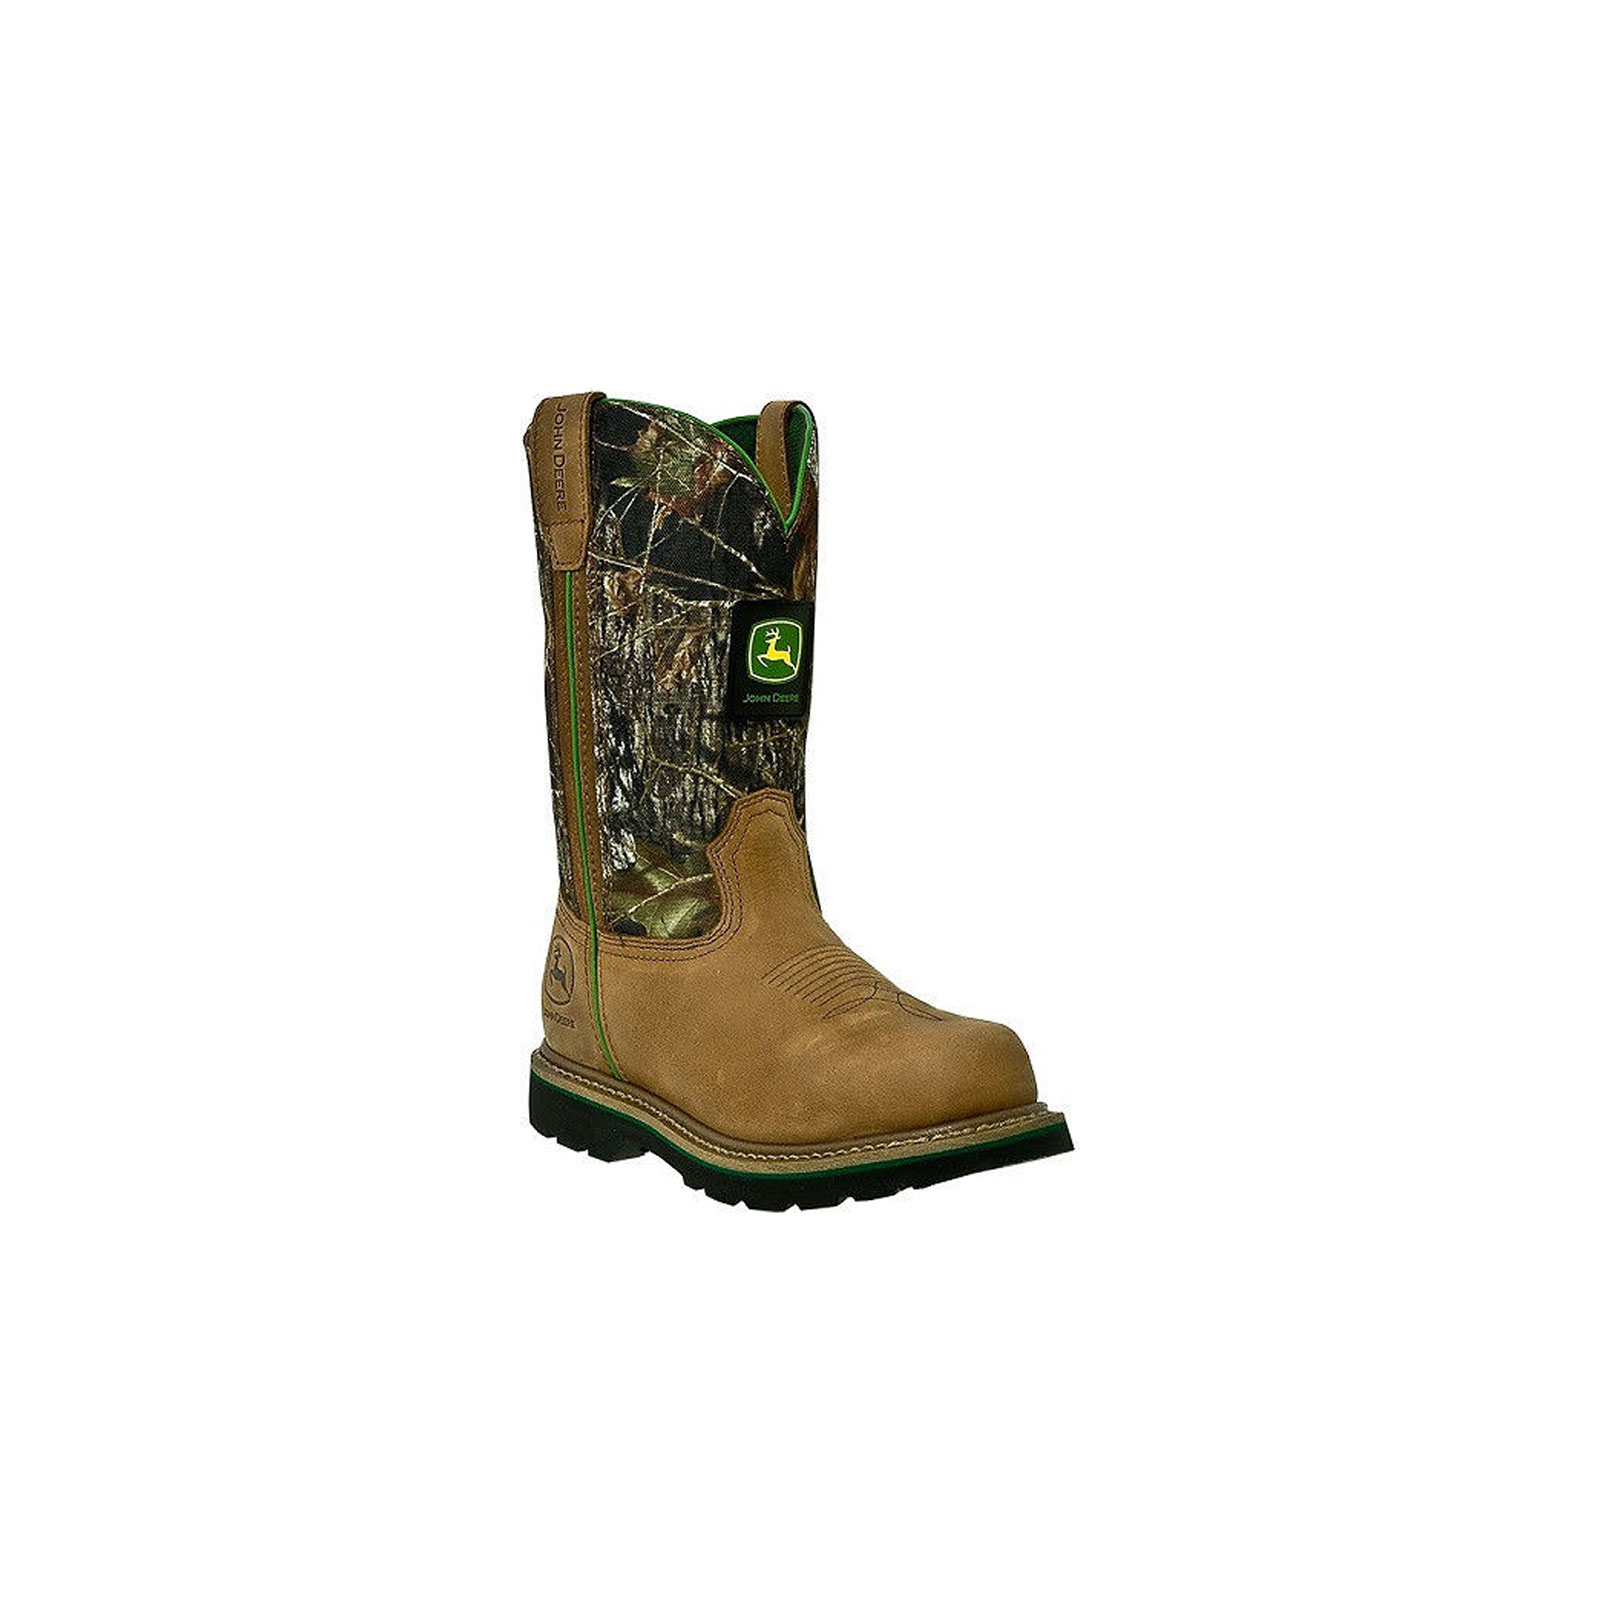 John Deere Men's Wellington Tan and MO with Green Steel Toe Work Boots JD4348 by John Deere